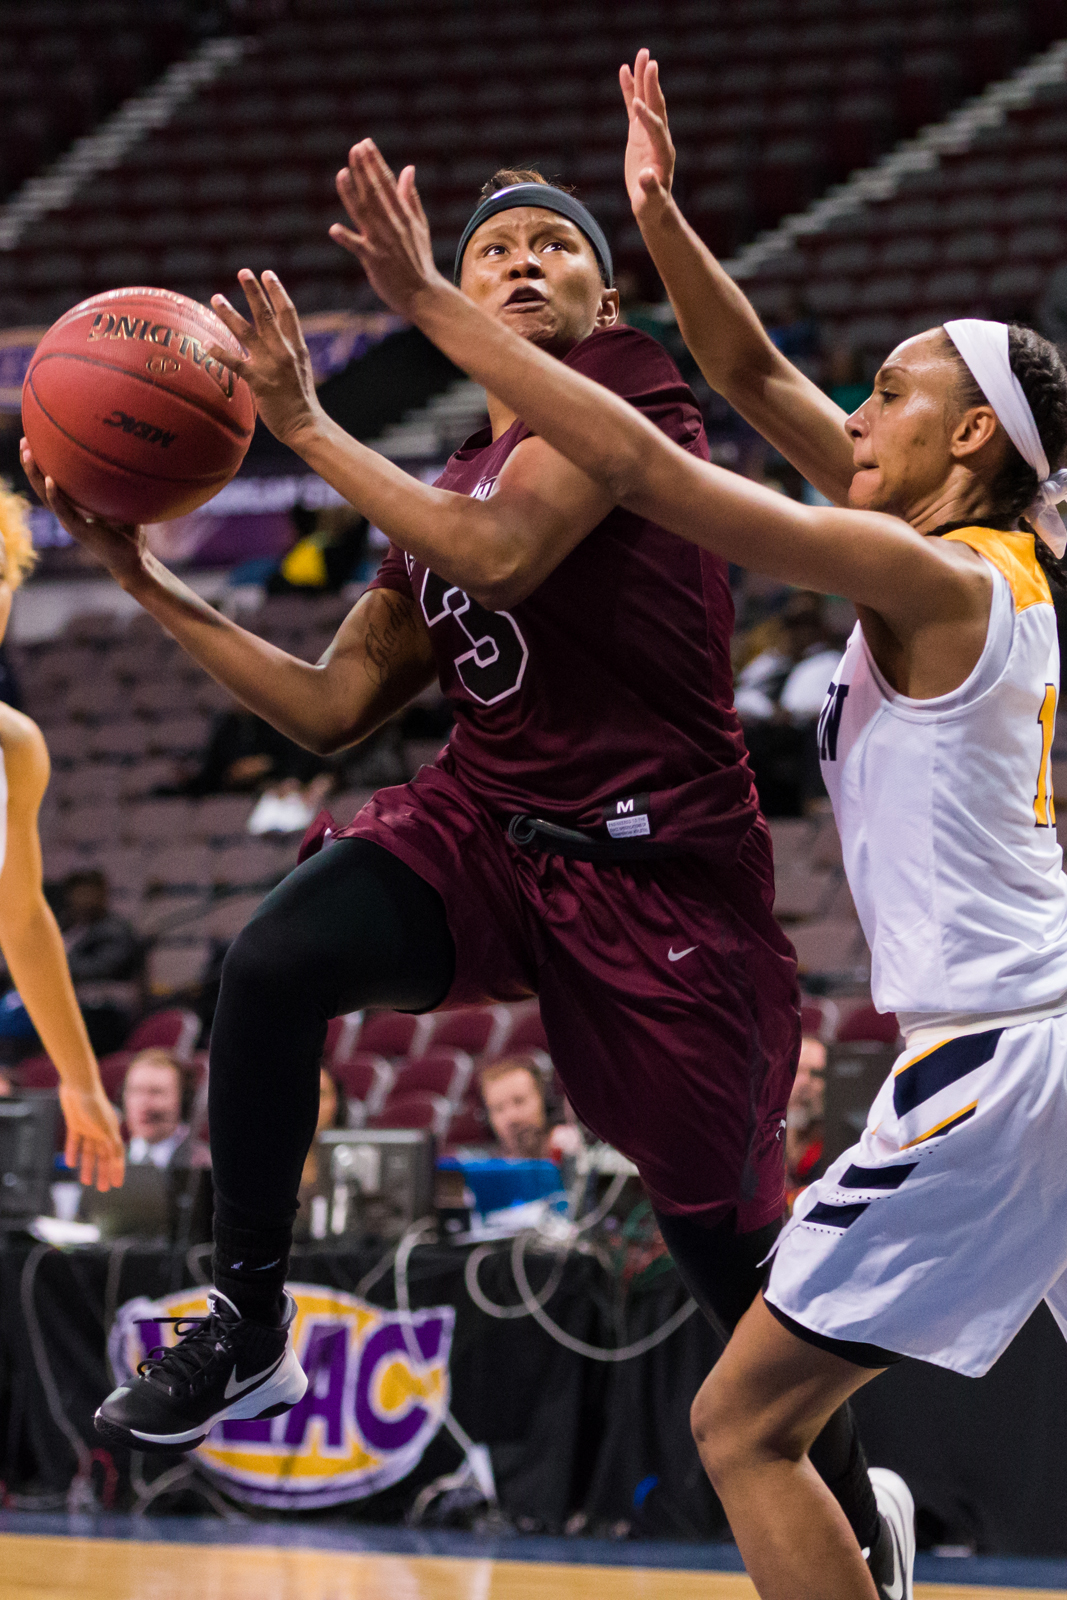 Maryland Eastern Shore Lady Hawks guard Alexus Hicks (3) goes up for a shot against Coppin State Lady Eagles forward Candice Beverly (11) during the 2017 MEAC Tournament held at the Scope Arena in Norfolk, VA. Maryland Eastern Shore defeated Coppin State 62-59.